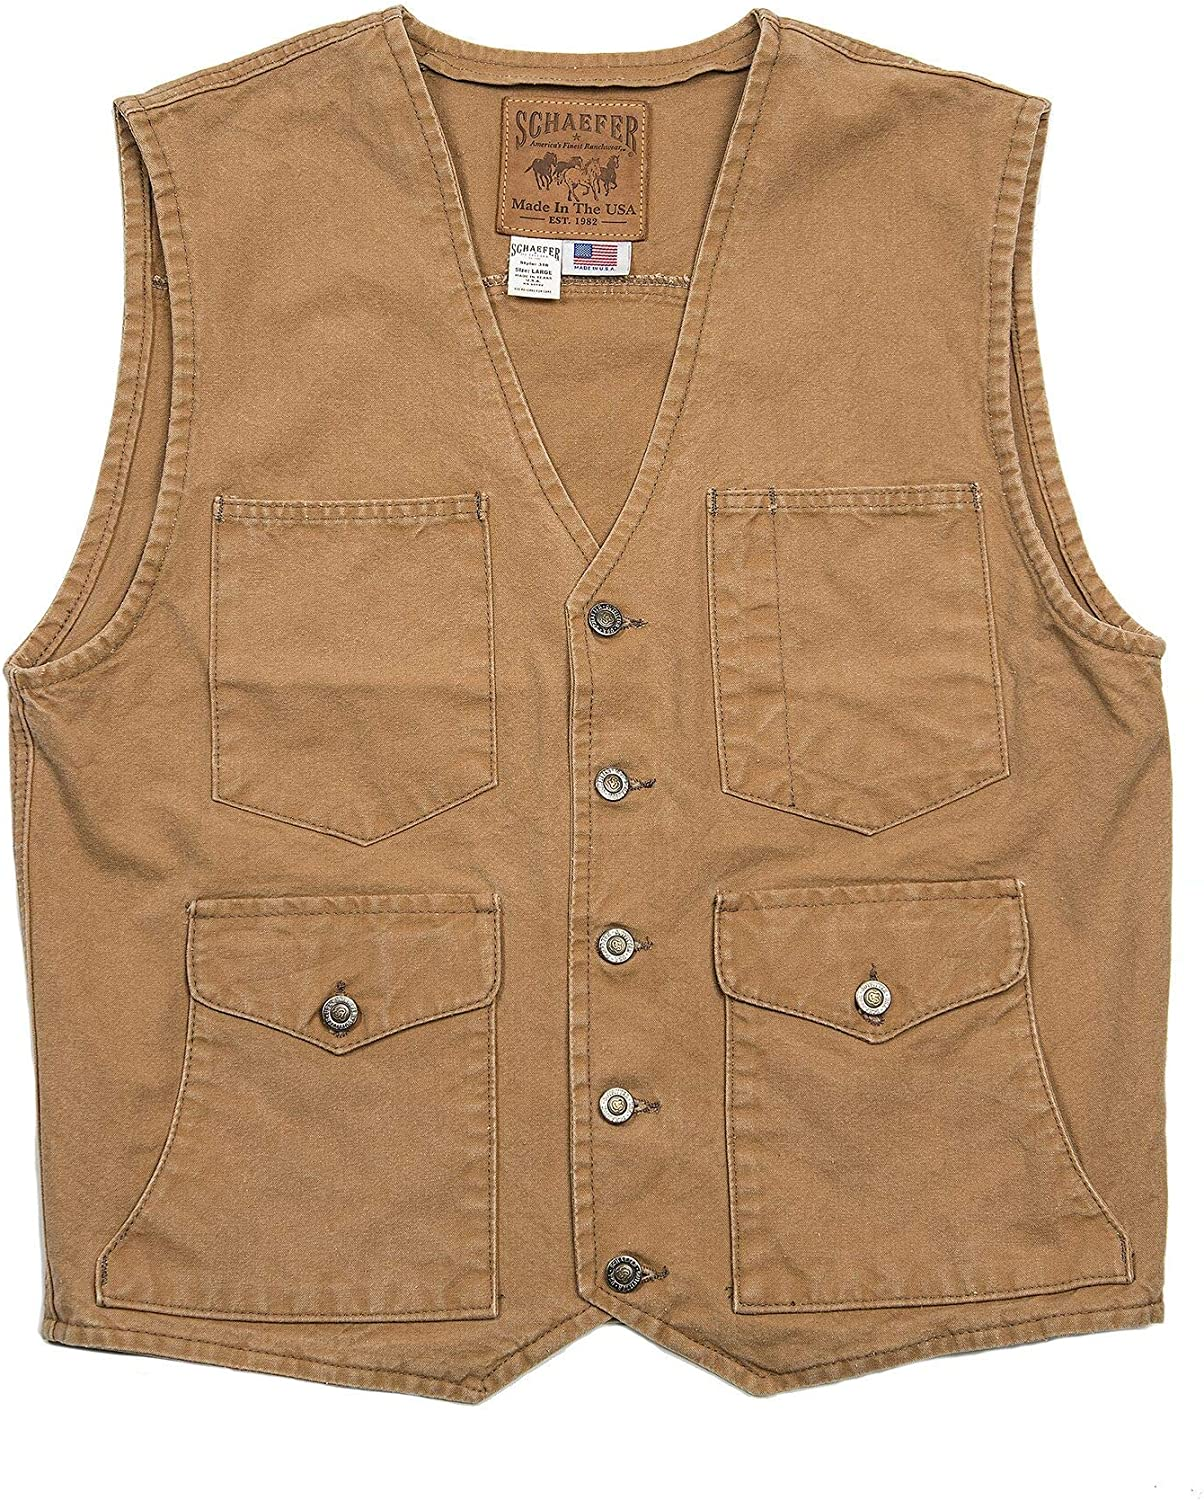 1920s Style Mens Vests Vintage Mesquite Vest $120.00 AT vintagedancer.com